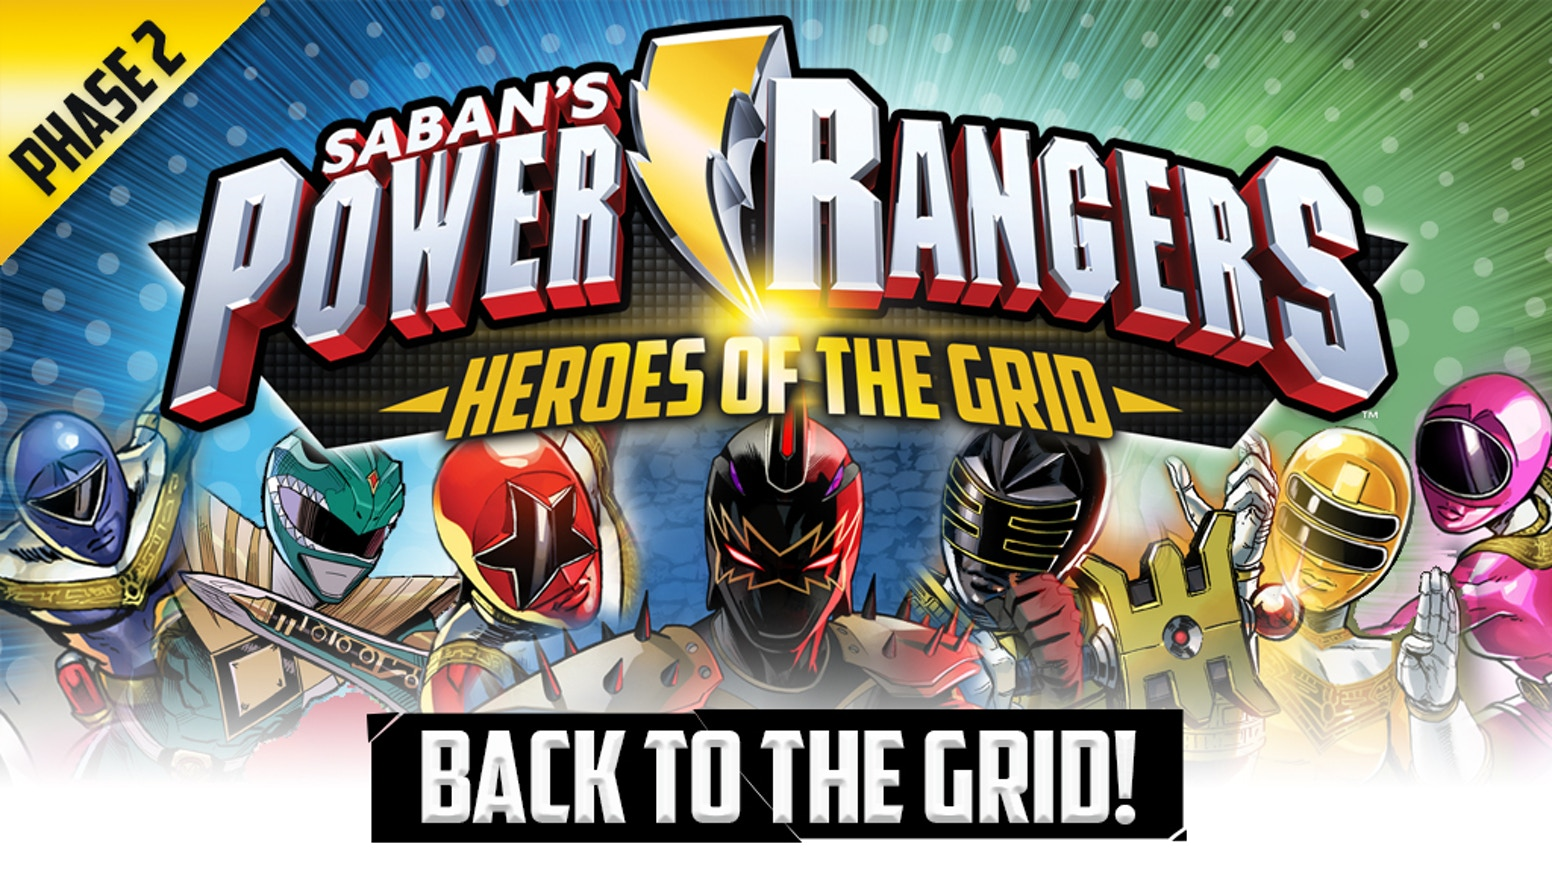 Power up your game with new expansions for the hit tabletop game: Power Rangers: Heroes of the Grid!